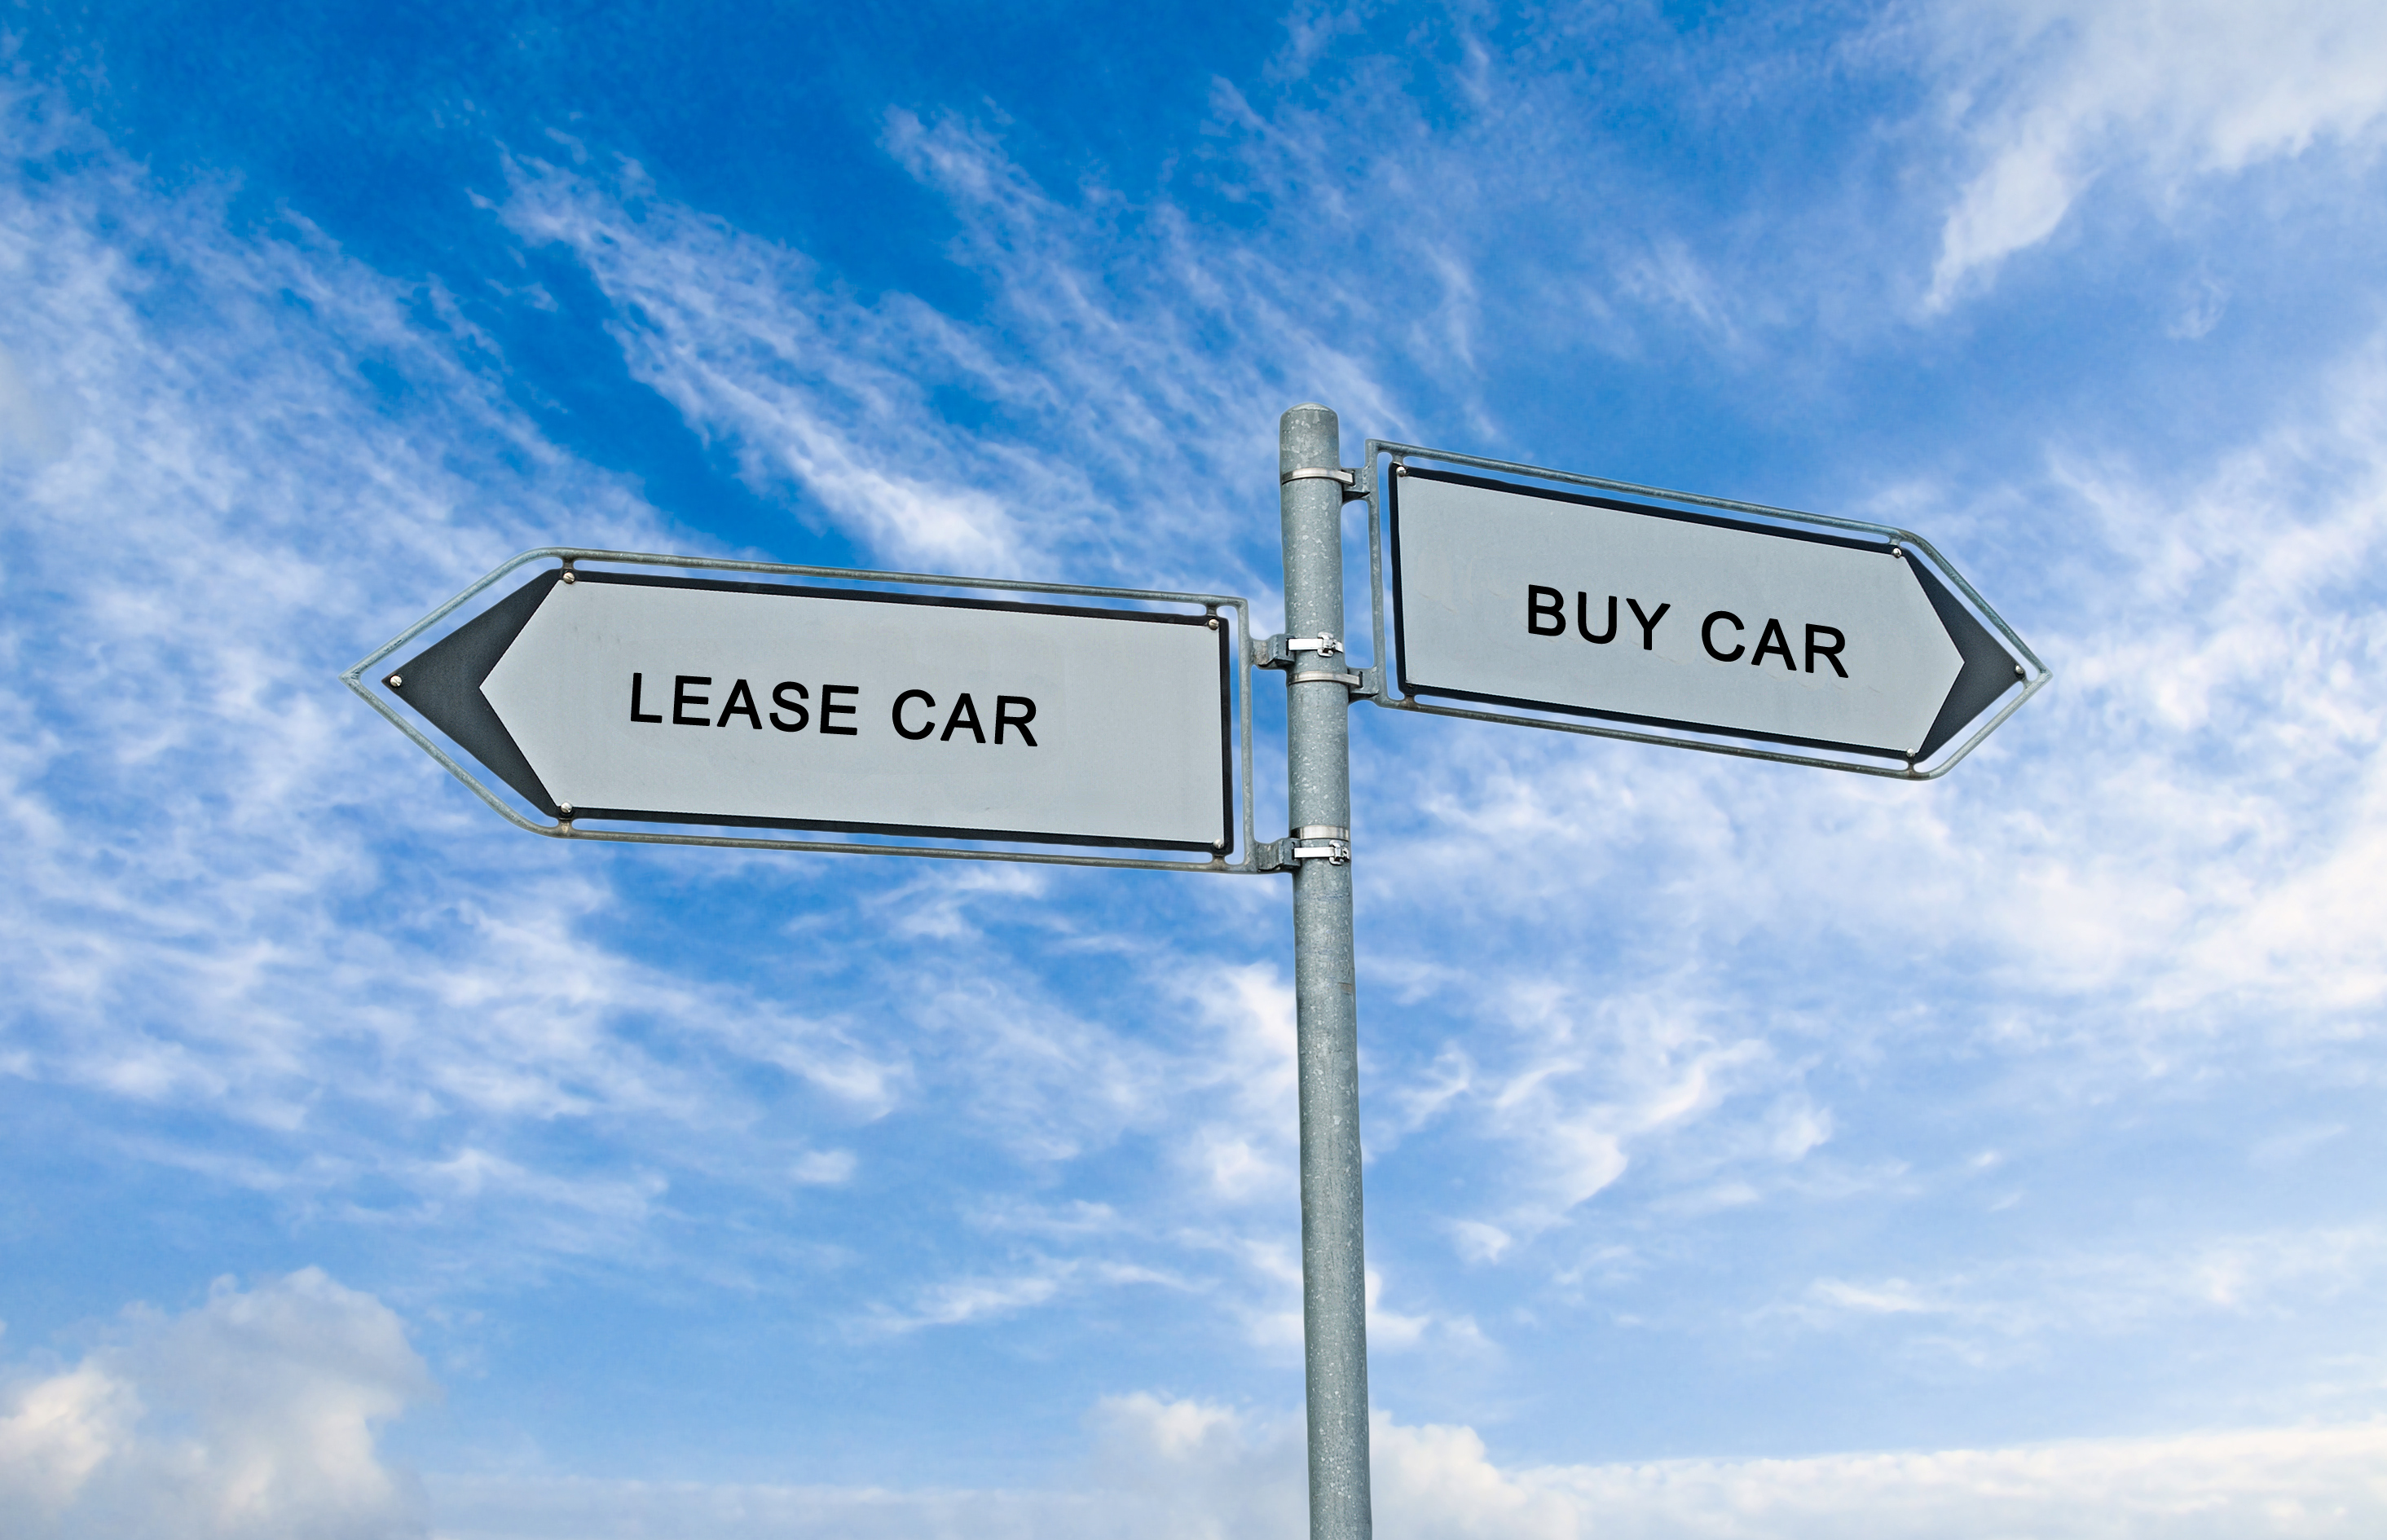 Leasing Vs Buying A Car Pros And Cons >> Buying Vs Leasing A New Car Weighing The Pros And Cons